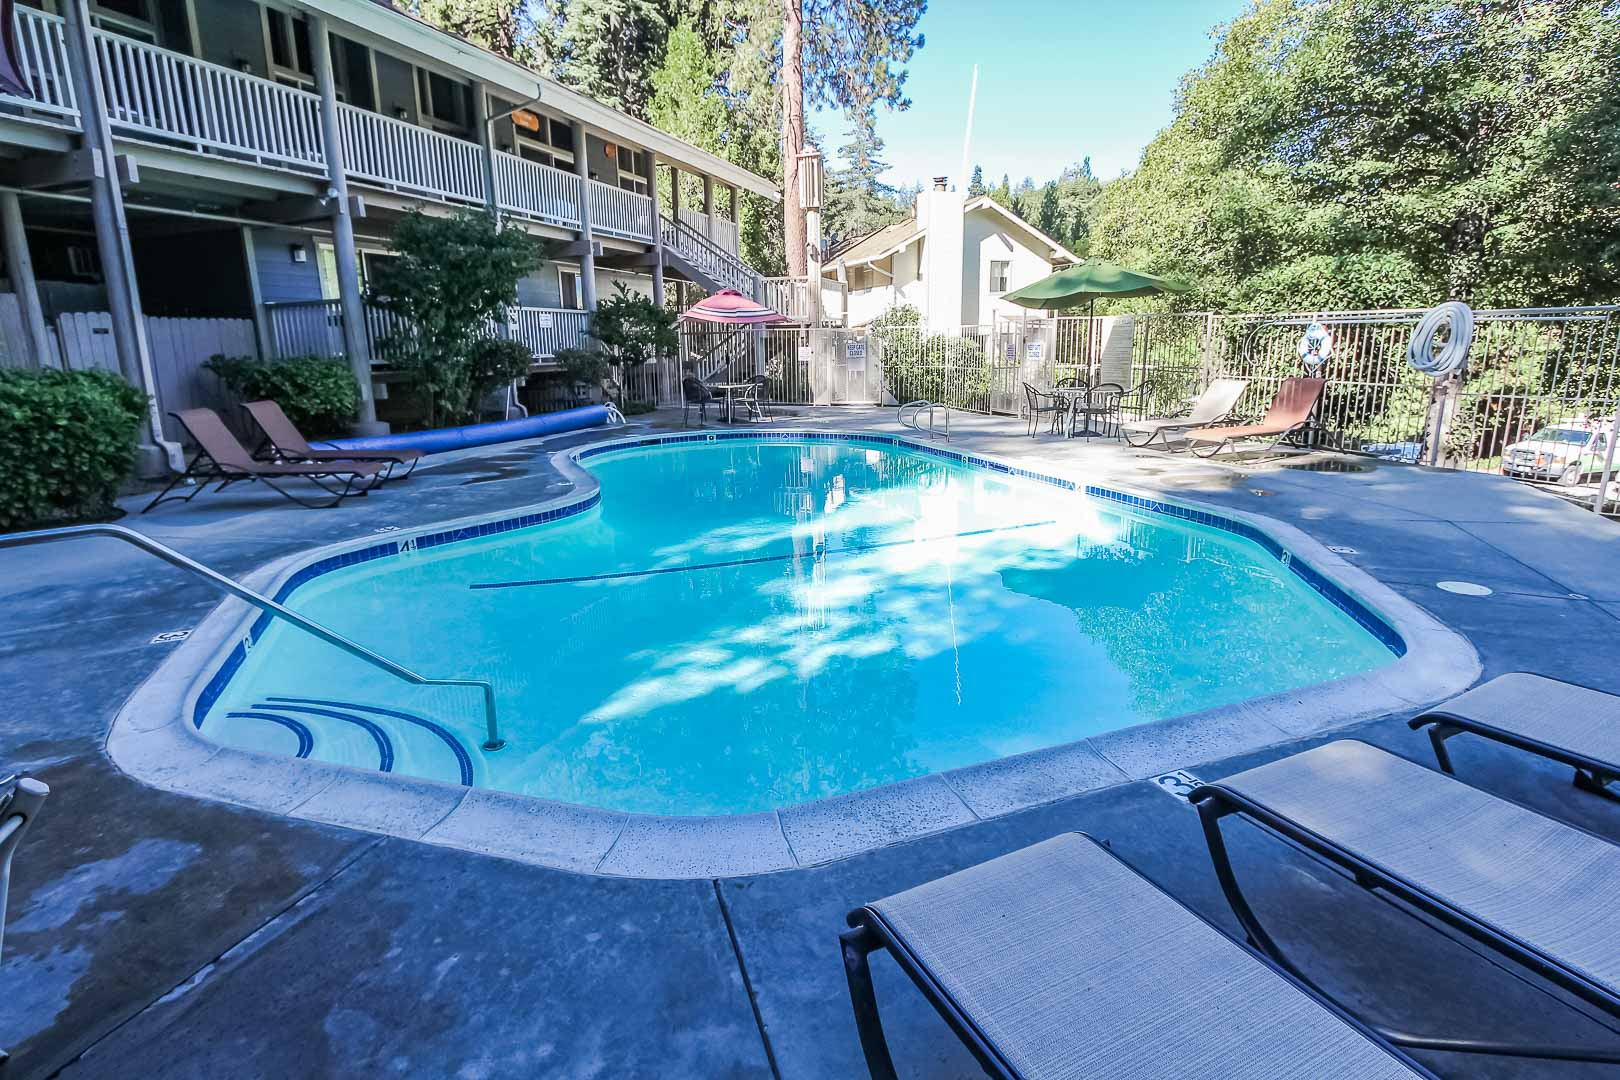 A crisp and clean outdoor swimming pool at VRI's Lake Arrowhead Chalets in California.